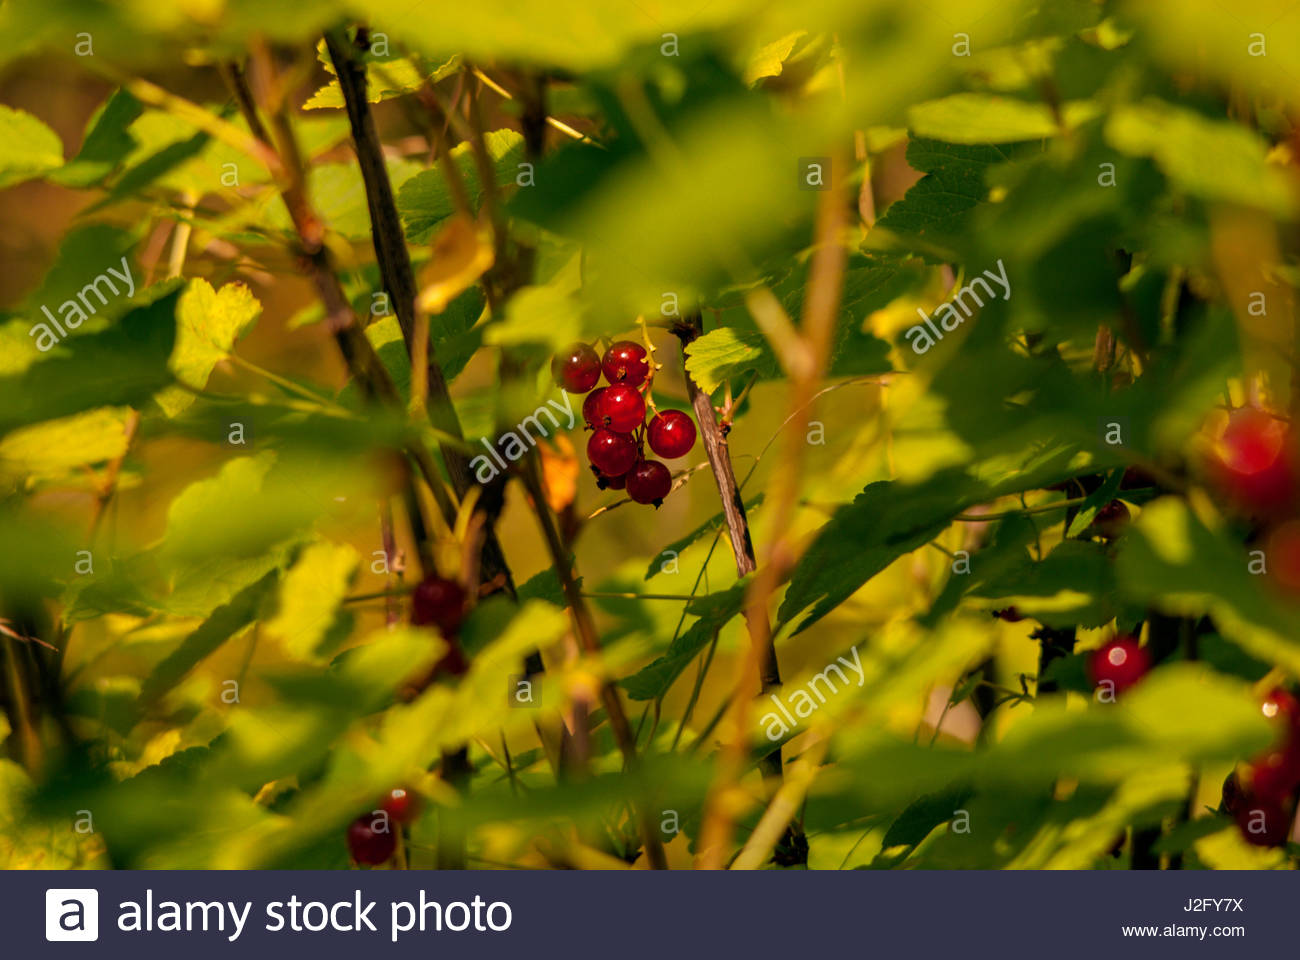 Redcurrant bush in the garden, has the important Anthocyanin.. - Stock Image